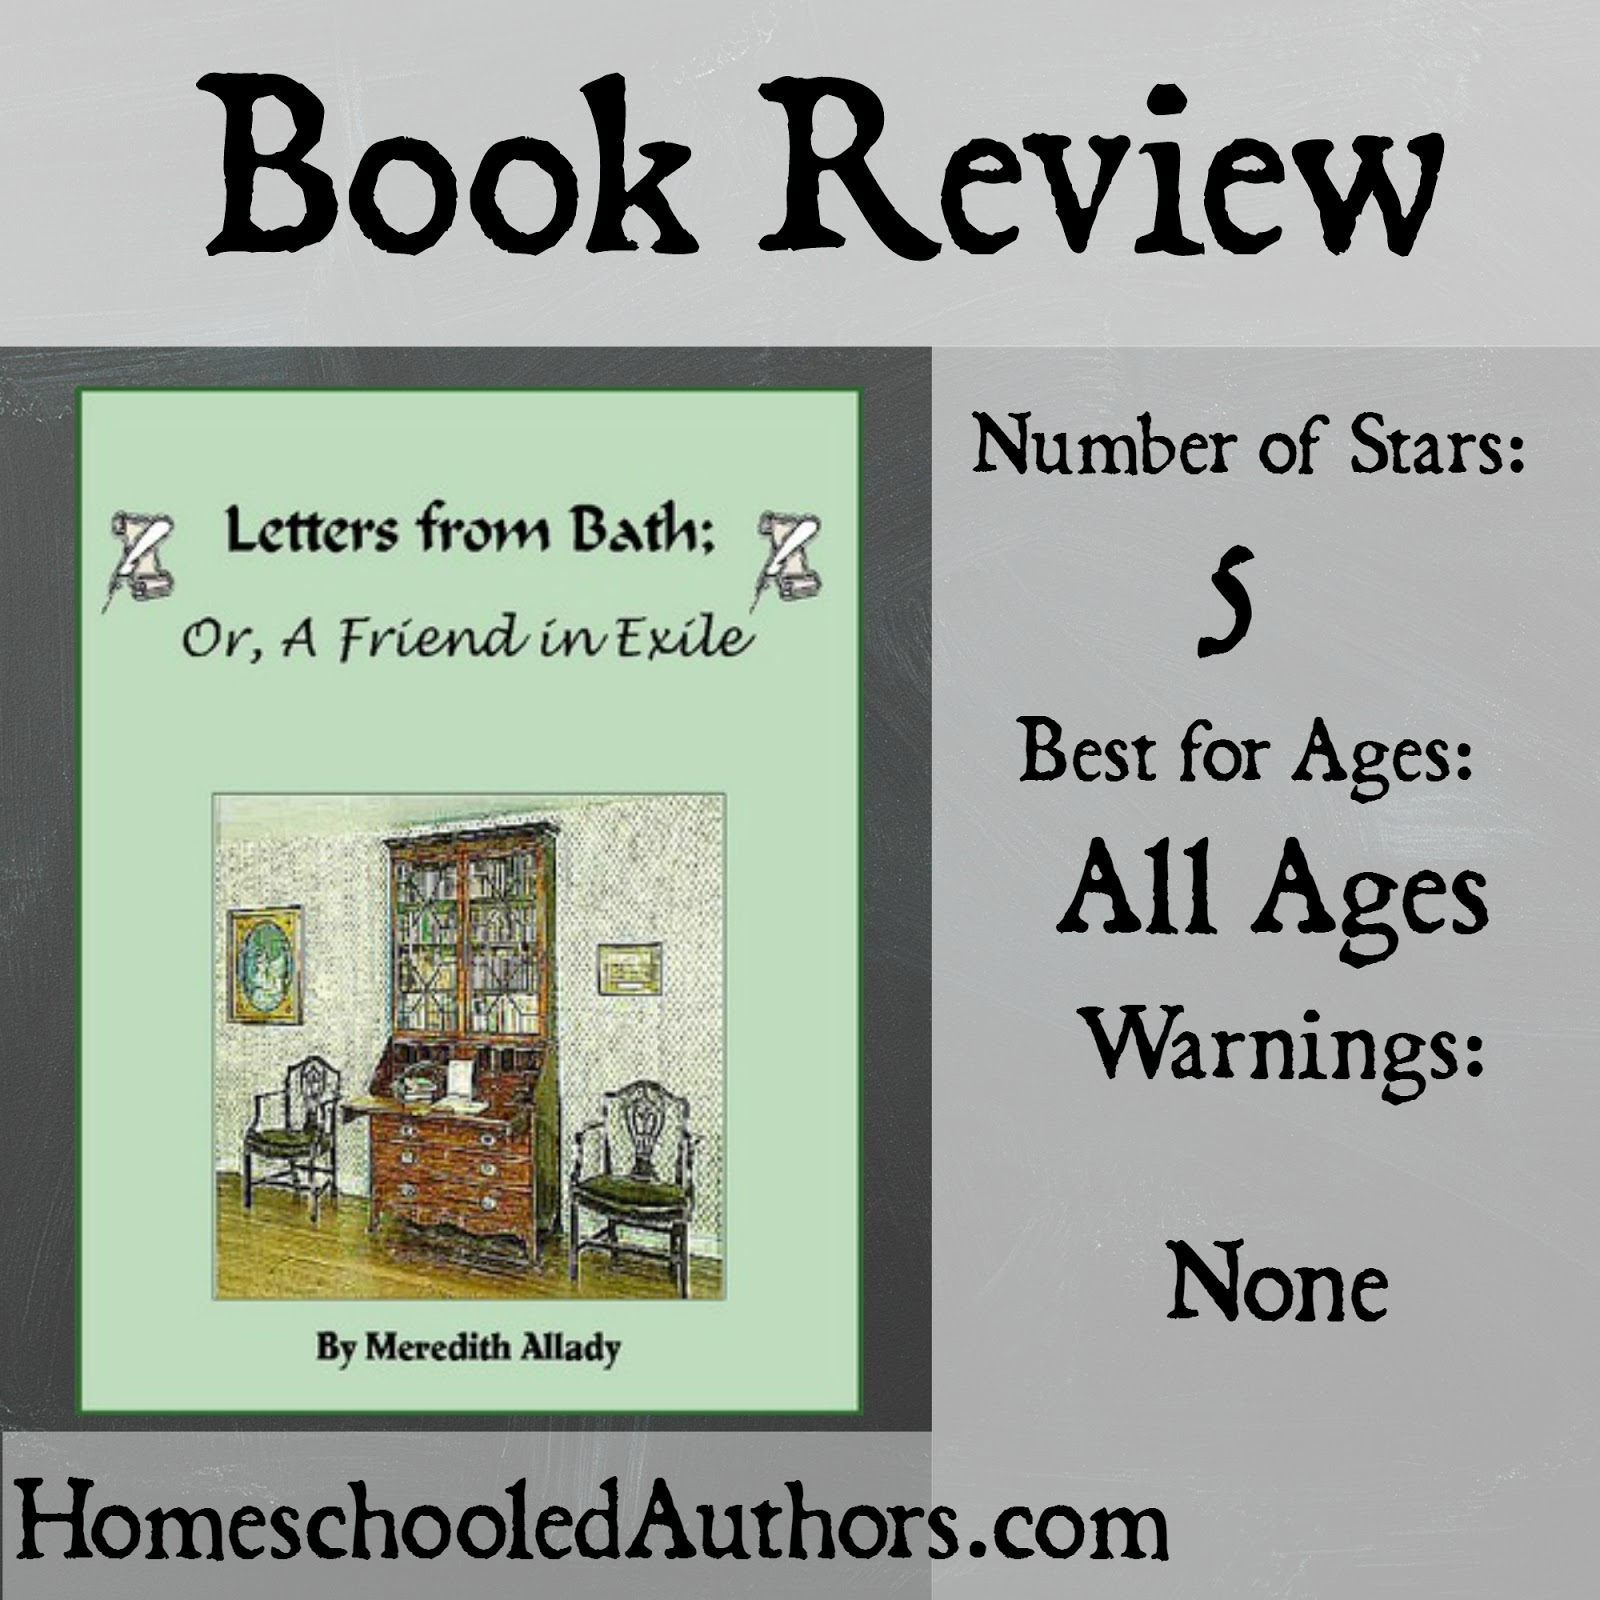 Book Review: Letters from Bath by Meredith Allady